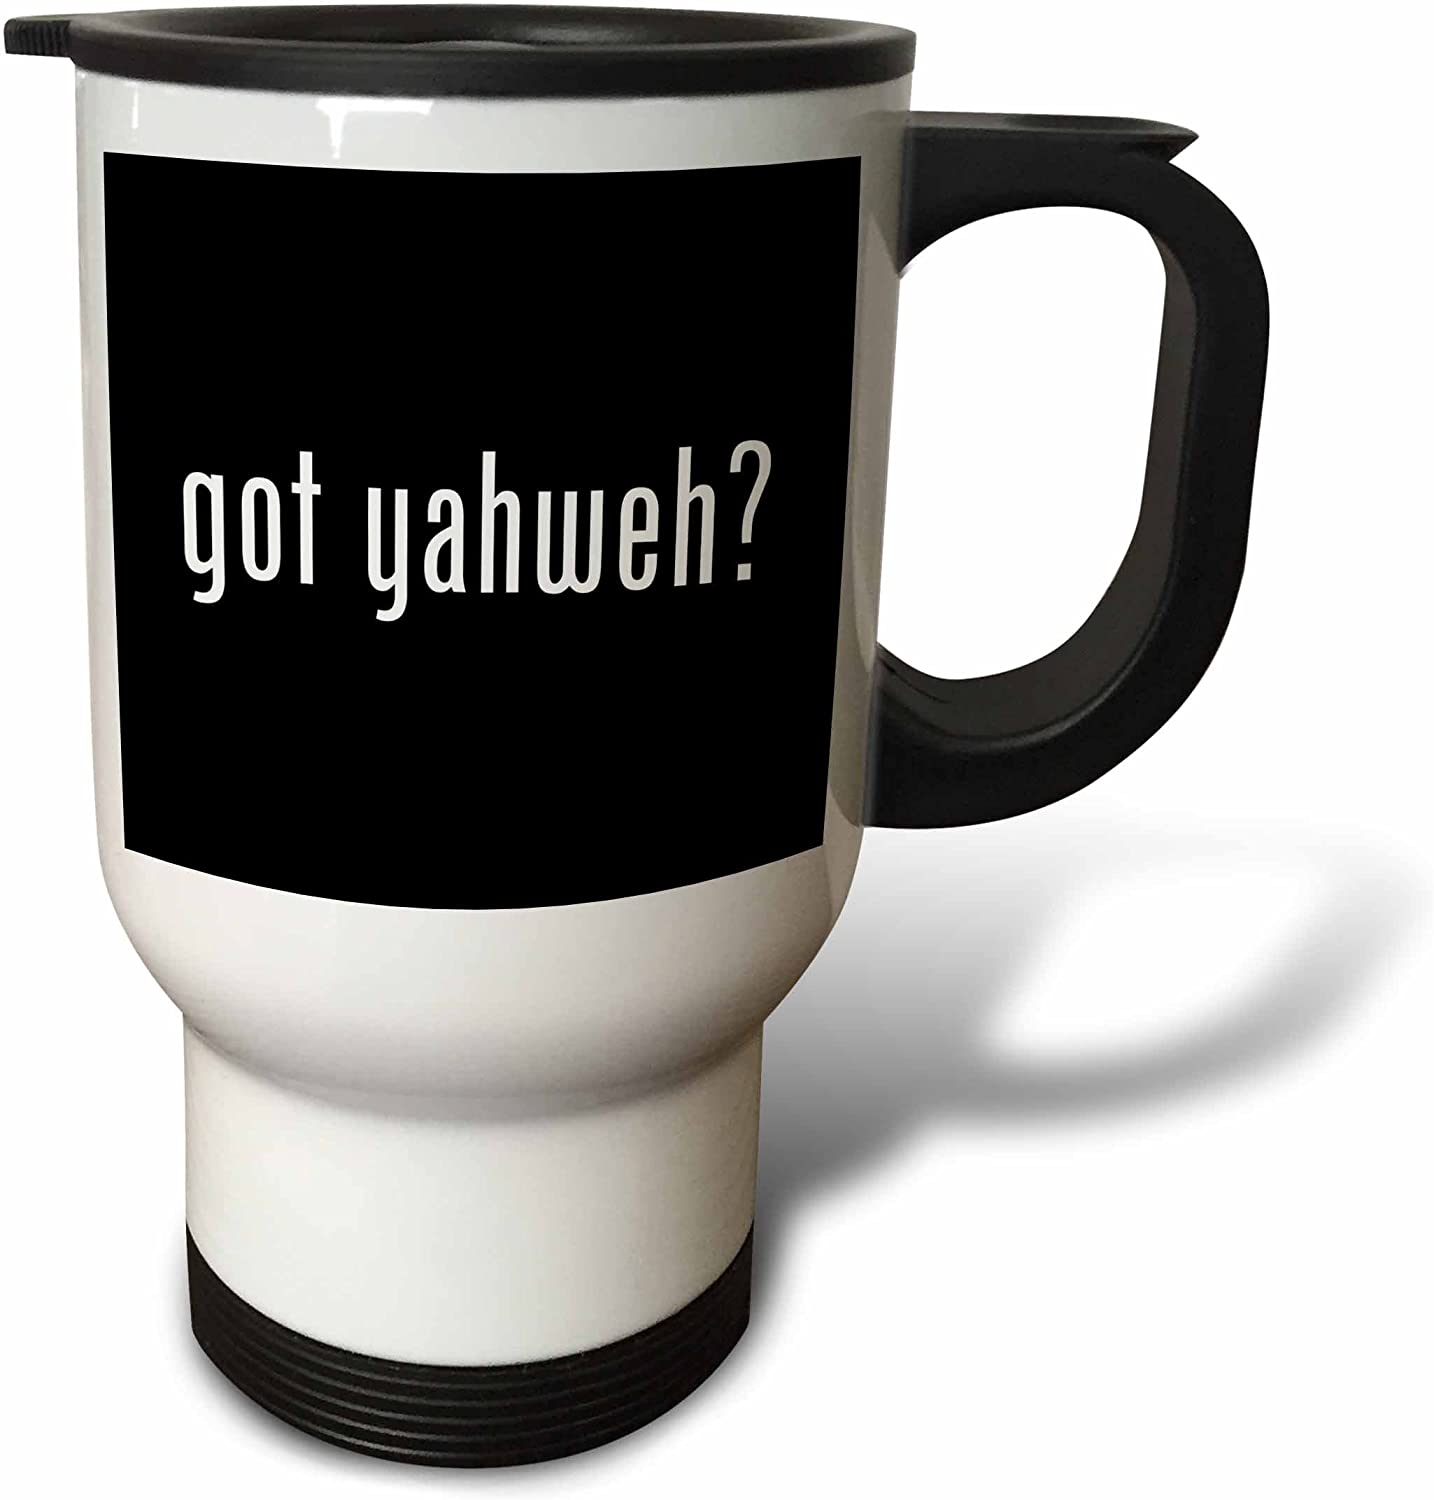 Amazon Com 3drose Got Yahweh Travel Mug 14 Ounce Stainless Steel Kitchen Dining